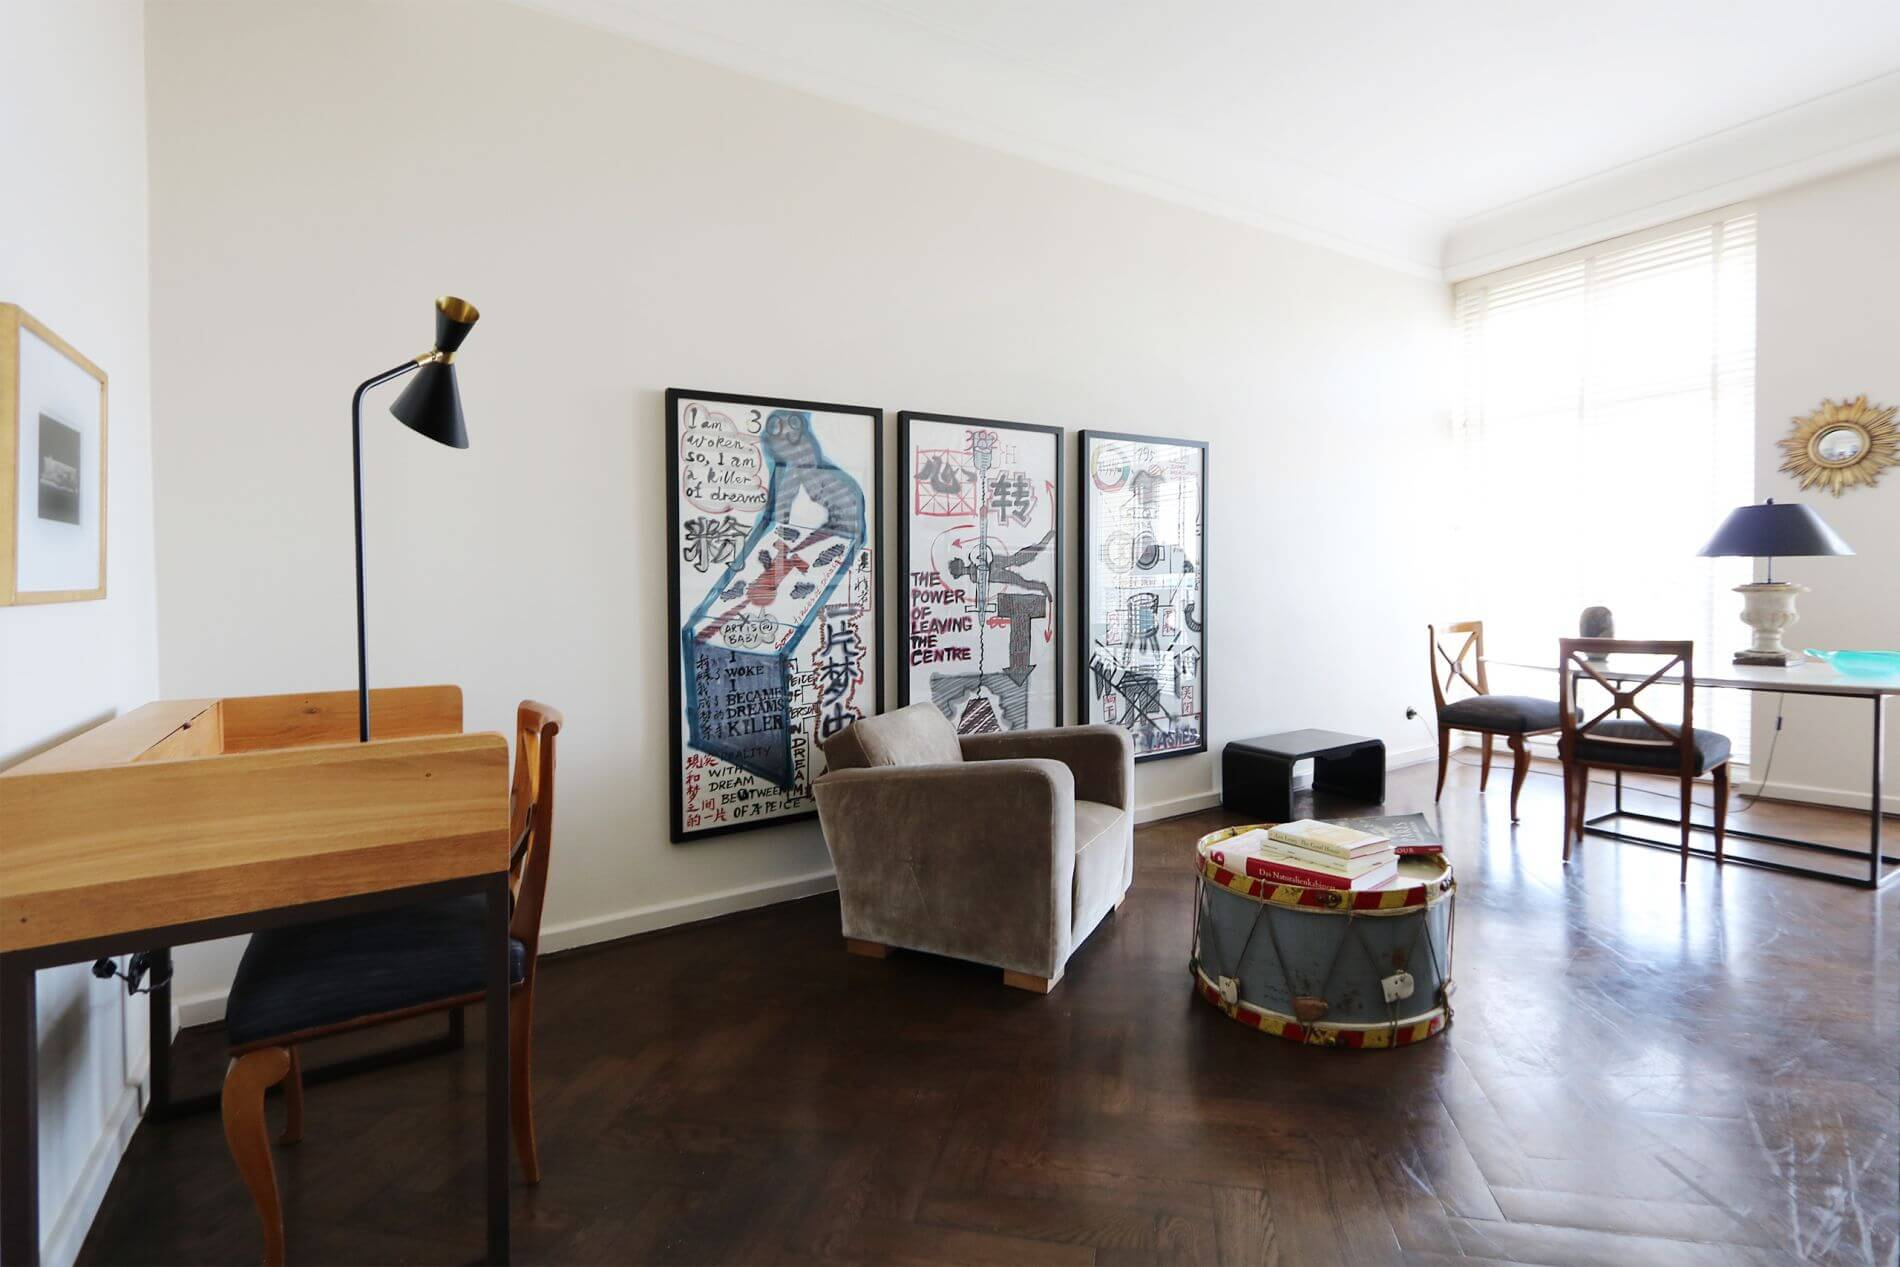 Spacious serviced apartment in Friedrichshain, Berlin with instant booking option